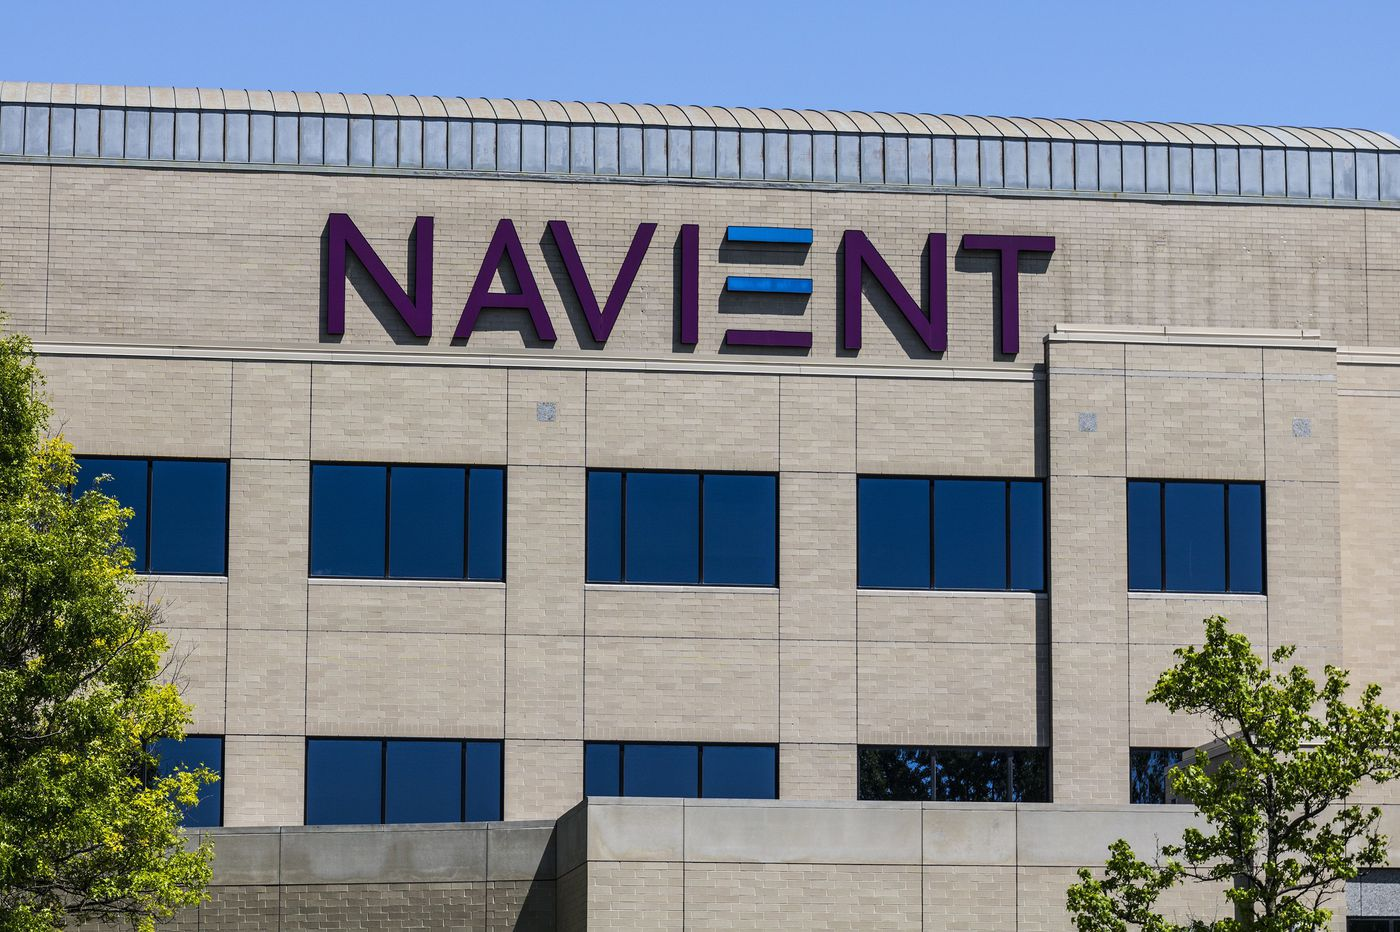 Student loan activists call on Navient to suspend share buybacks, dividend